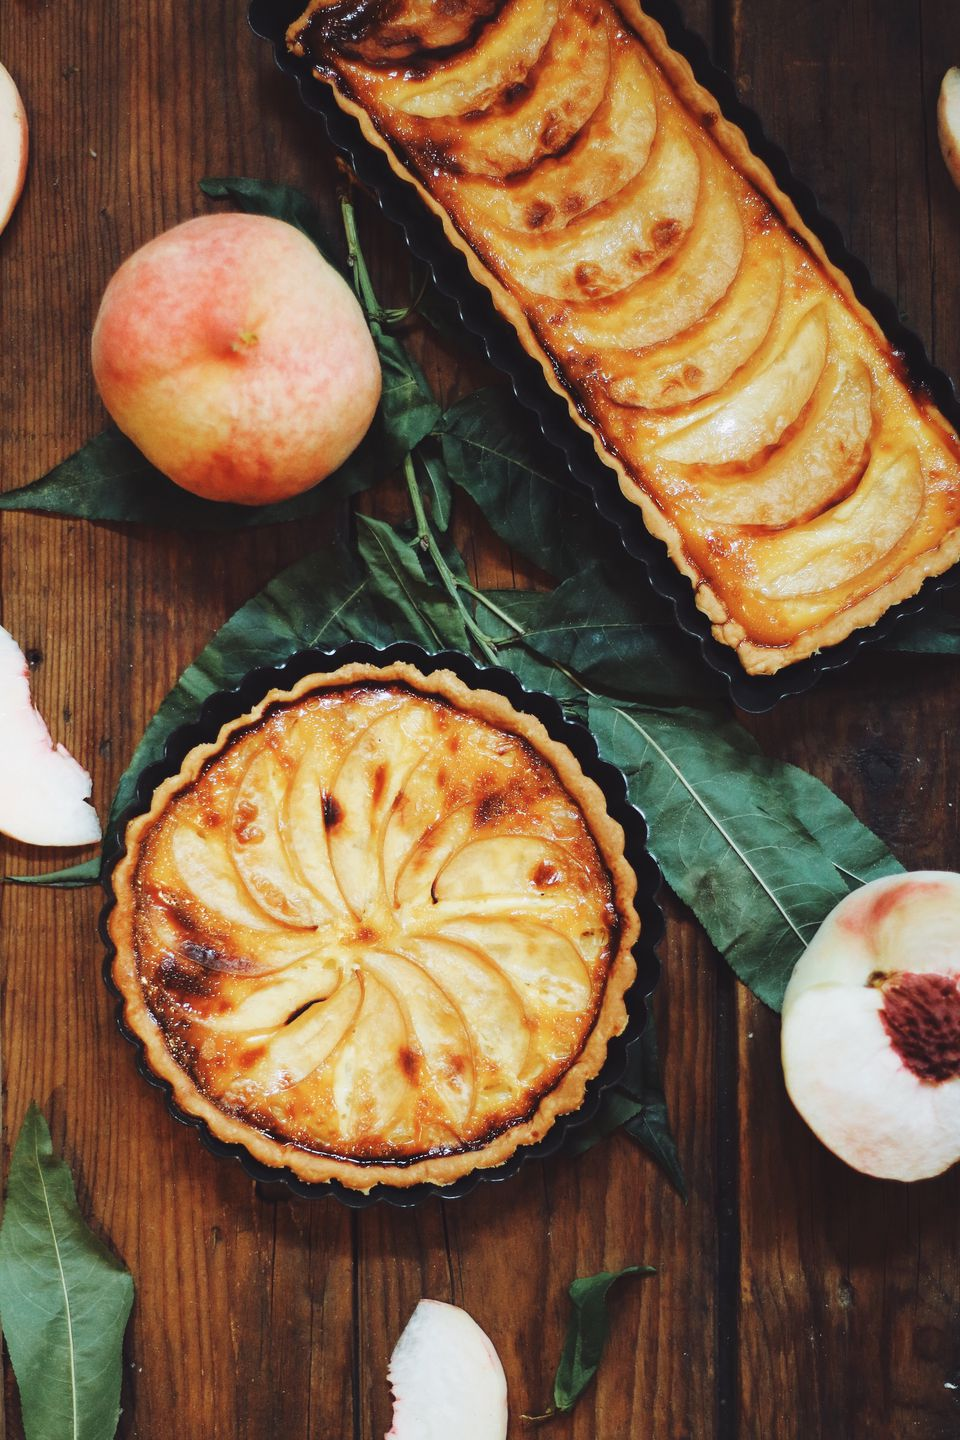 Directly Above Shot Of Peach Pies On Table